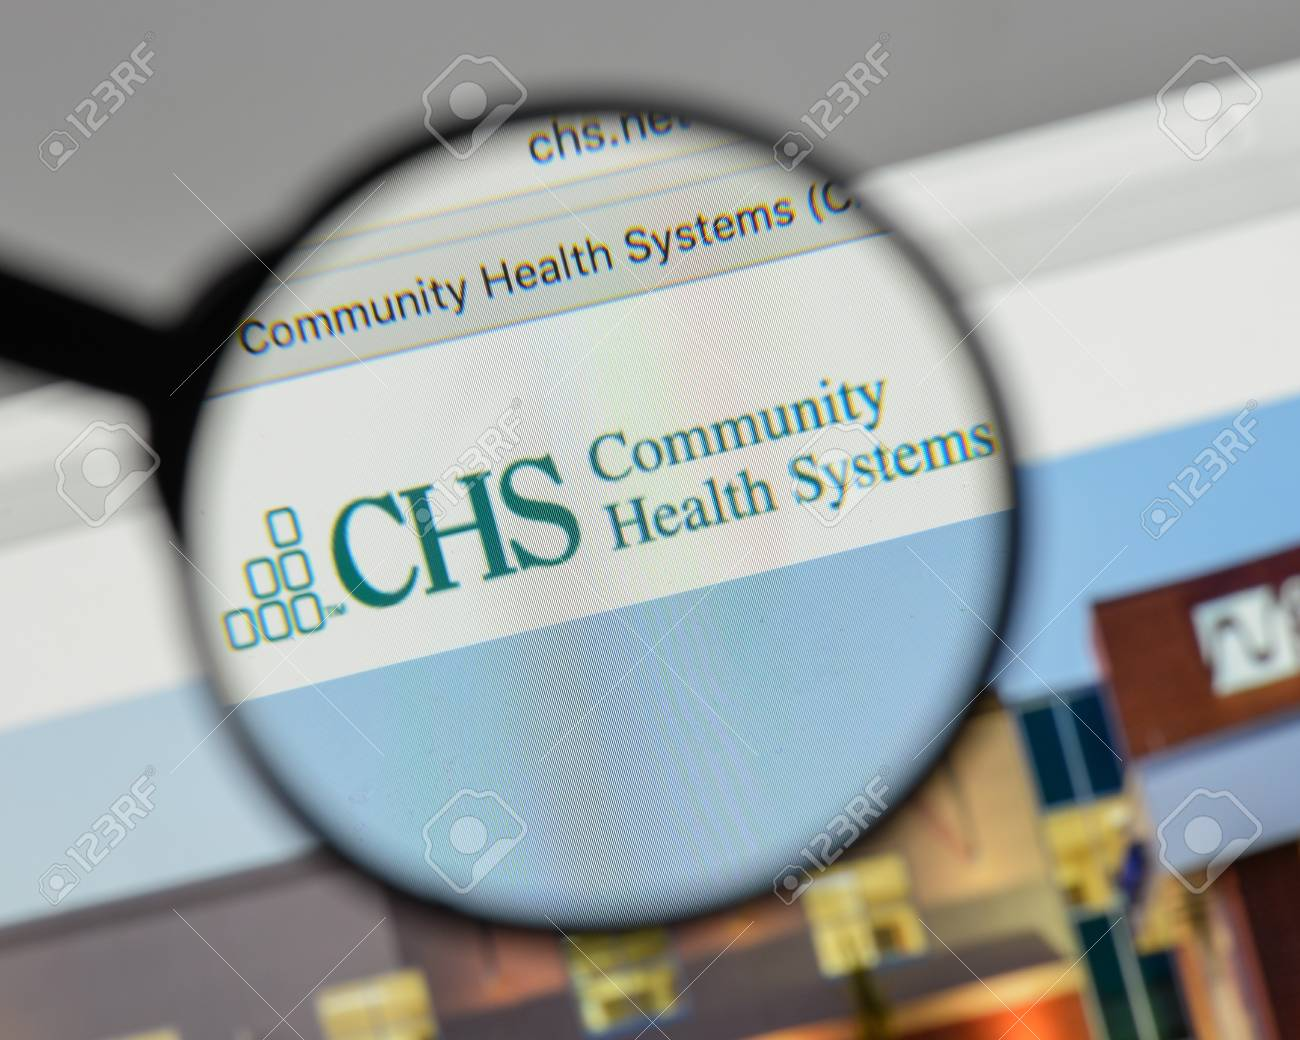 Image result for community health systems stock